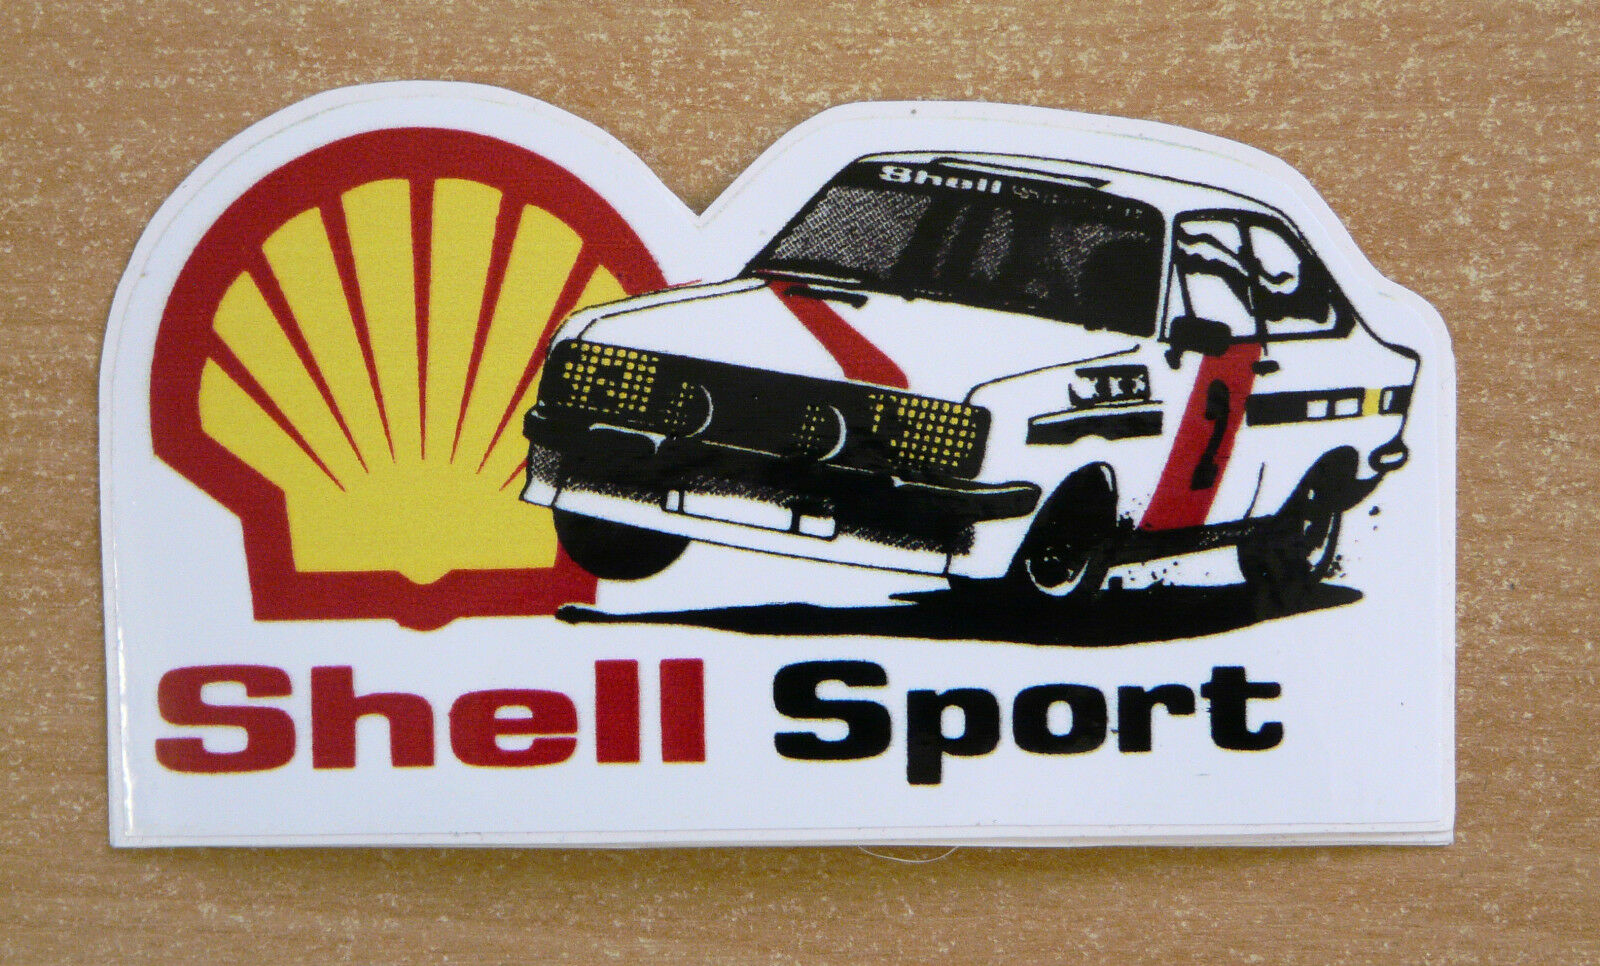 Shell sport ford escort mk2 rally race motorsport for Ford motor company customer service email address